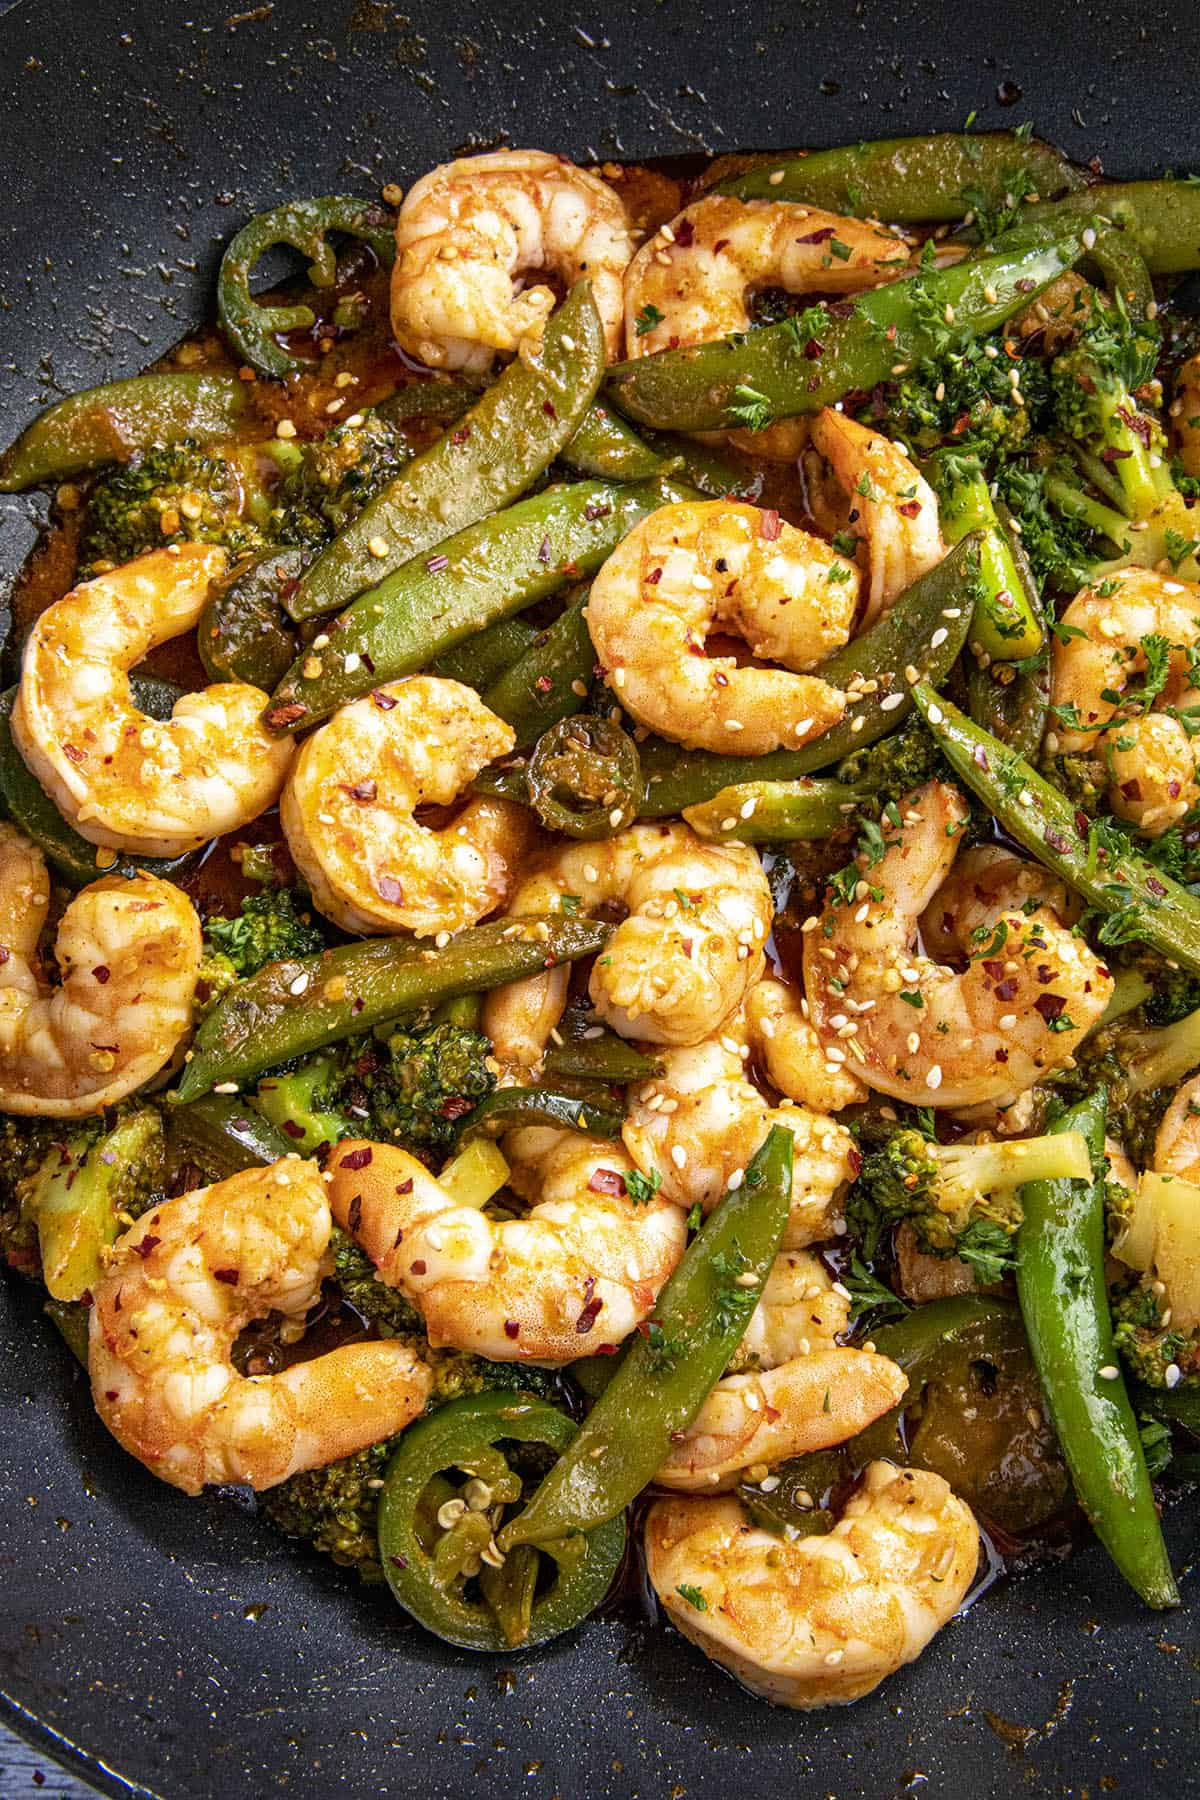 Spicy Shrimp Stir Fry Recipe in a wok with lots of shrimp and vegetables